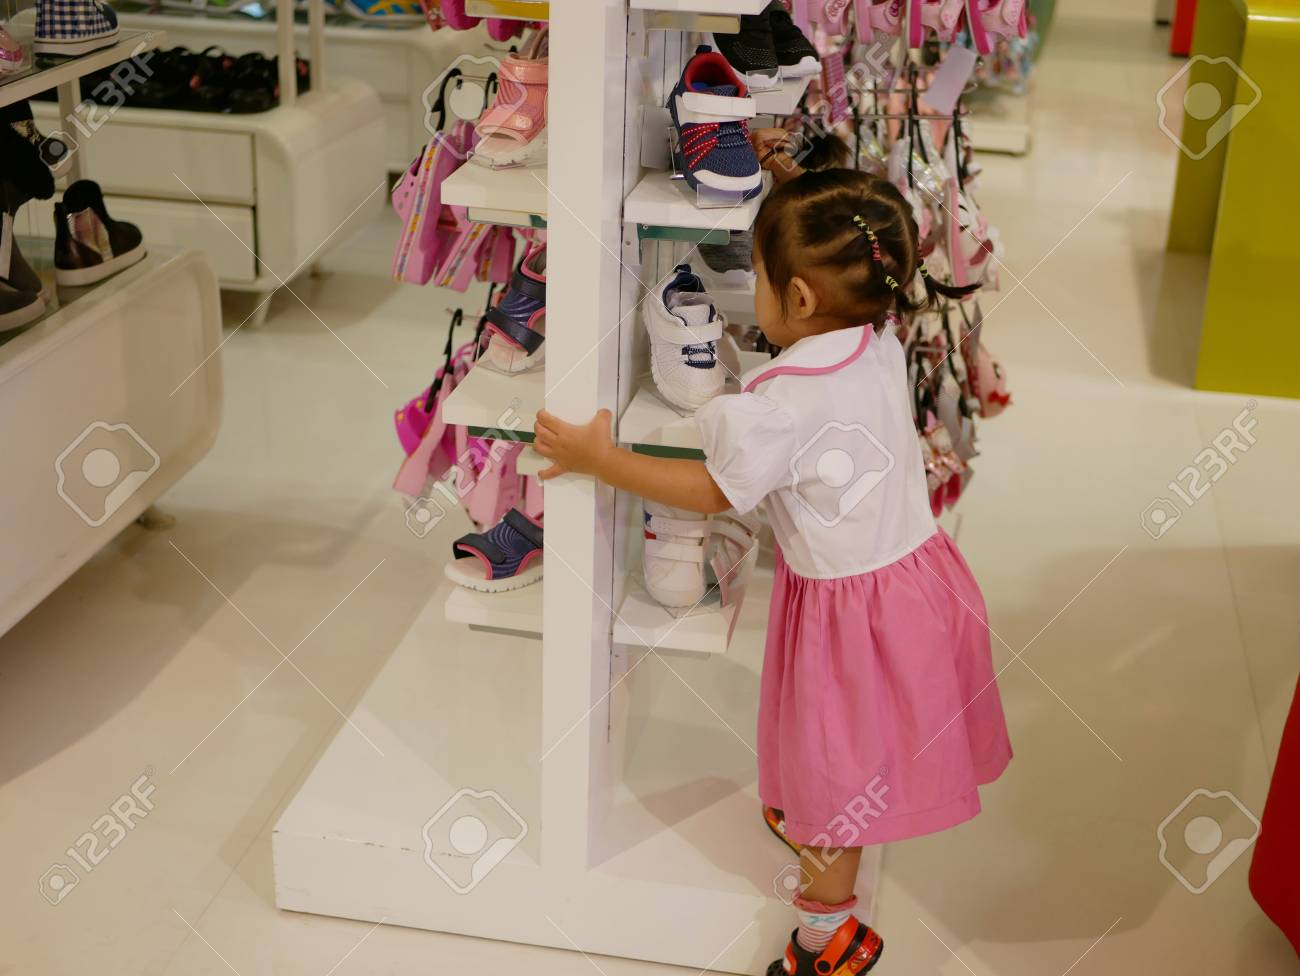 Little Asian Baby Girl, 19 Months Old, Trying To Climb Shoe Shelves